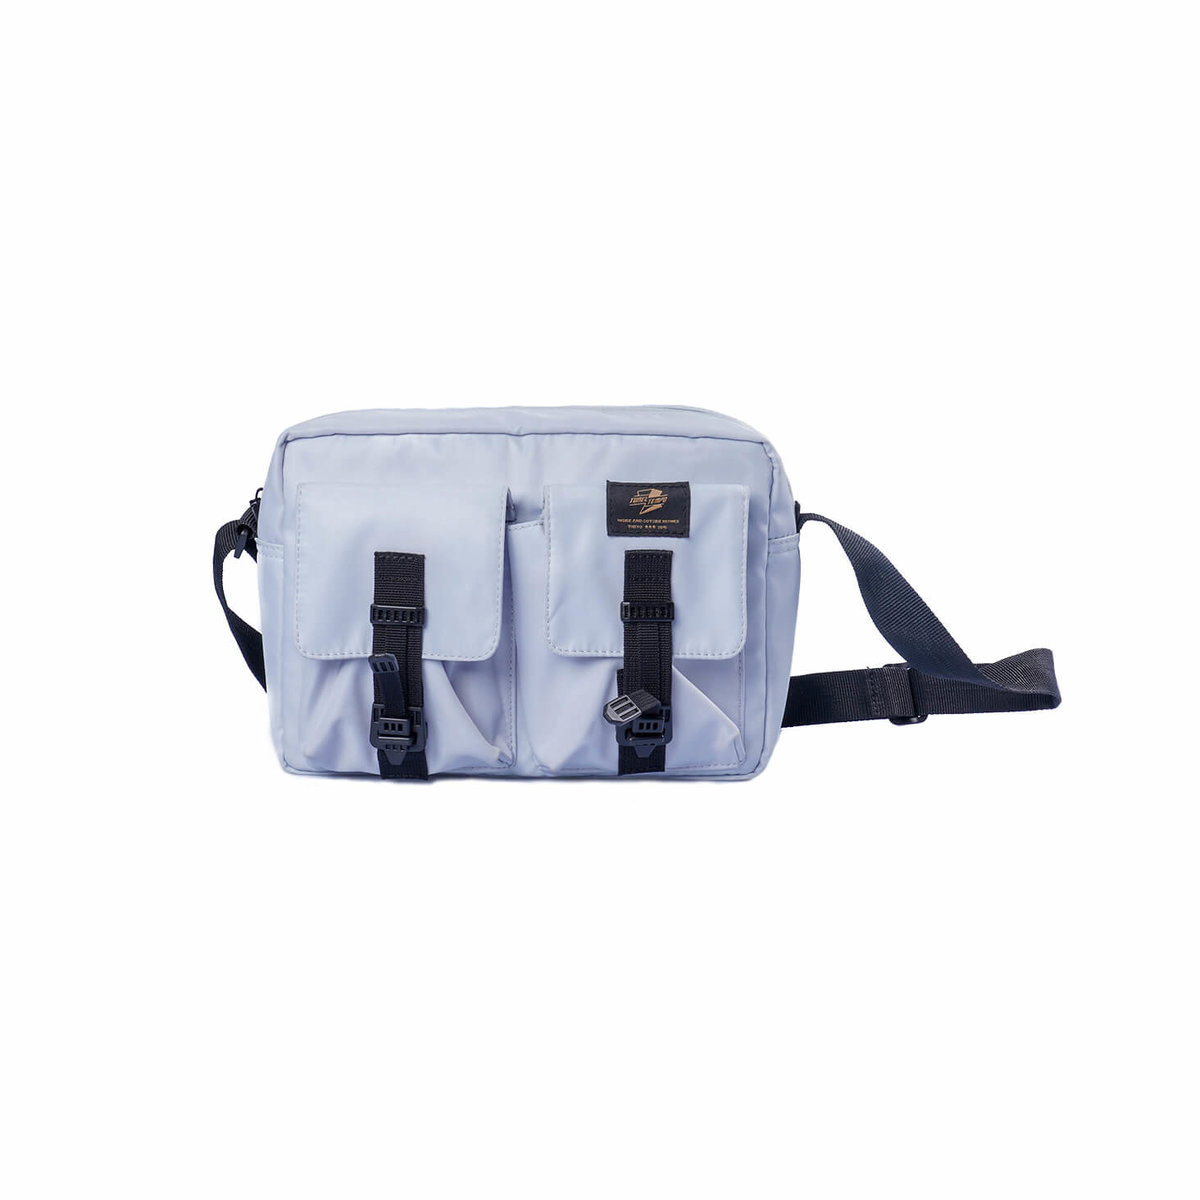 After-school leisure in Seto Inland Sea Japanese retro functional and practical army gray white